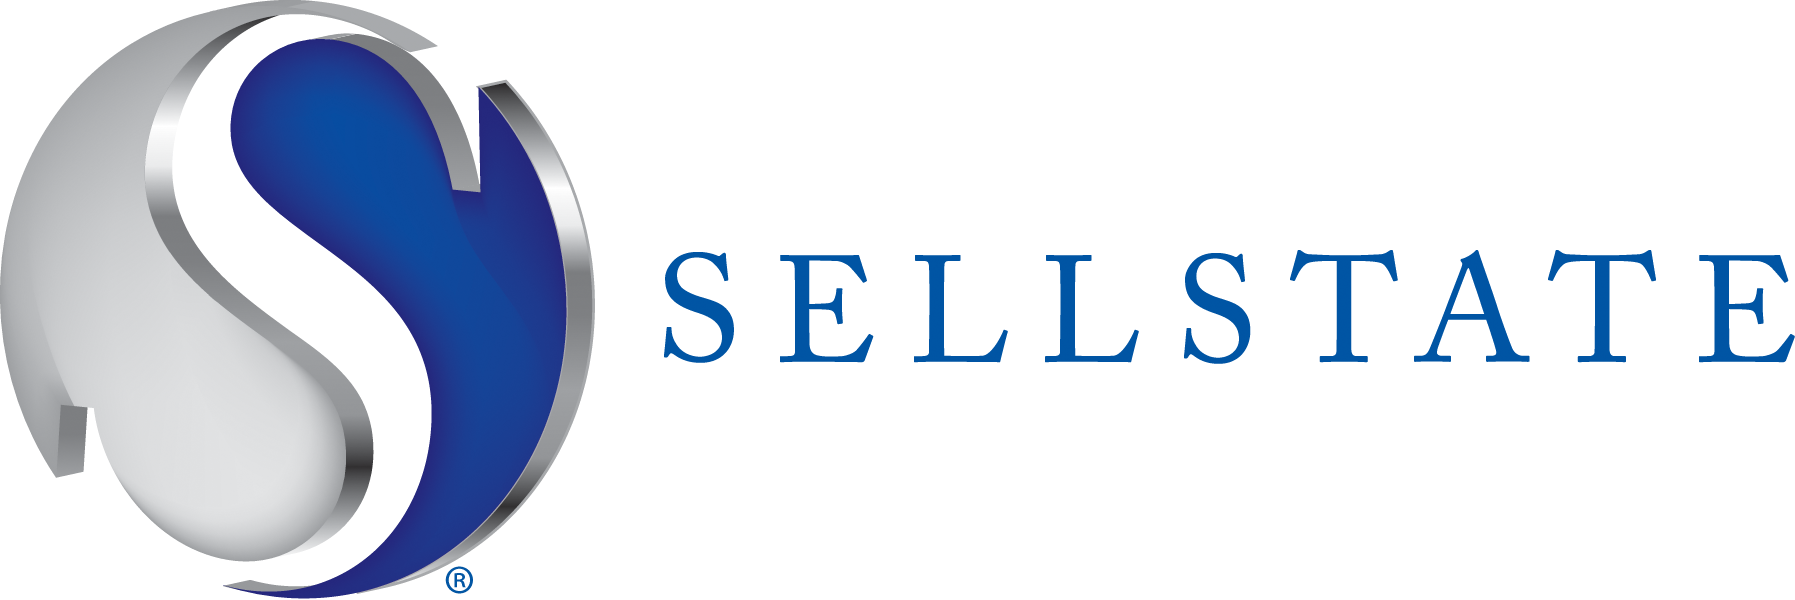 Sellstate Partners Realty